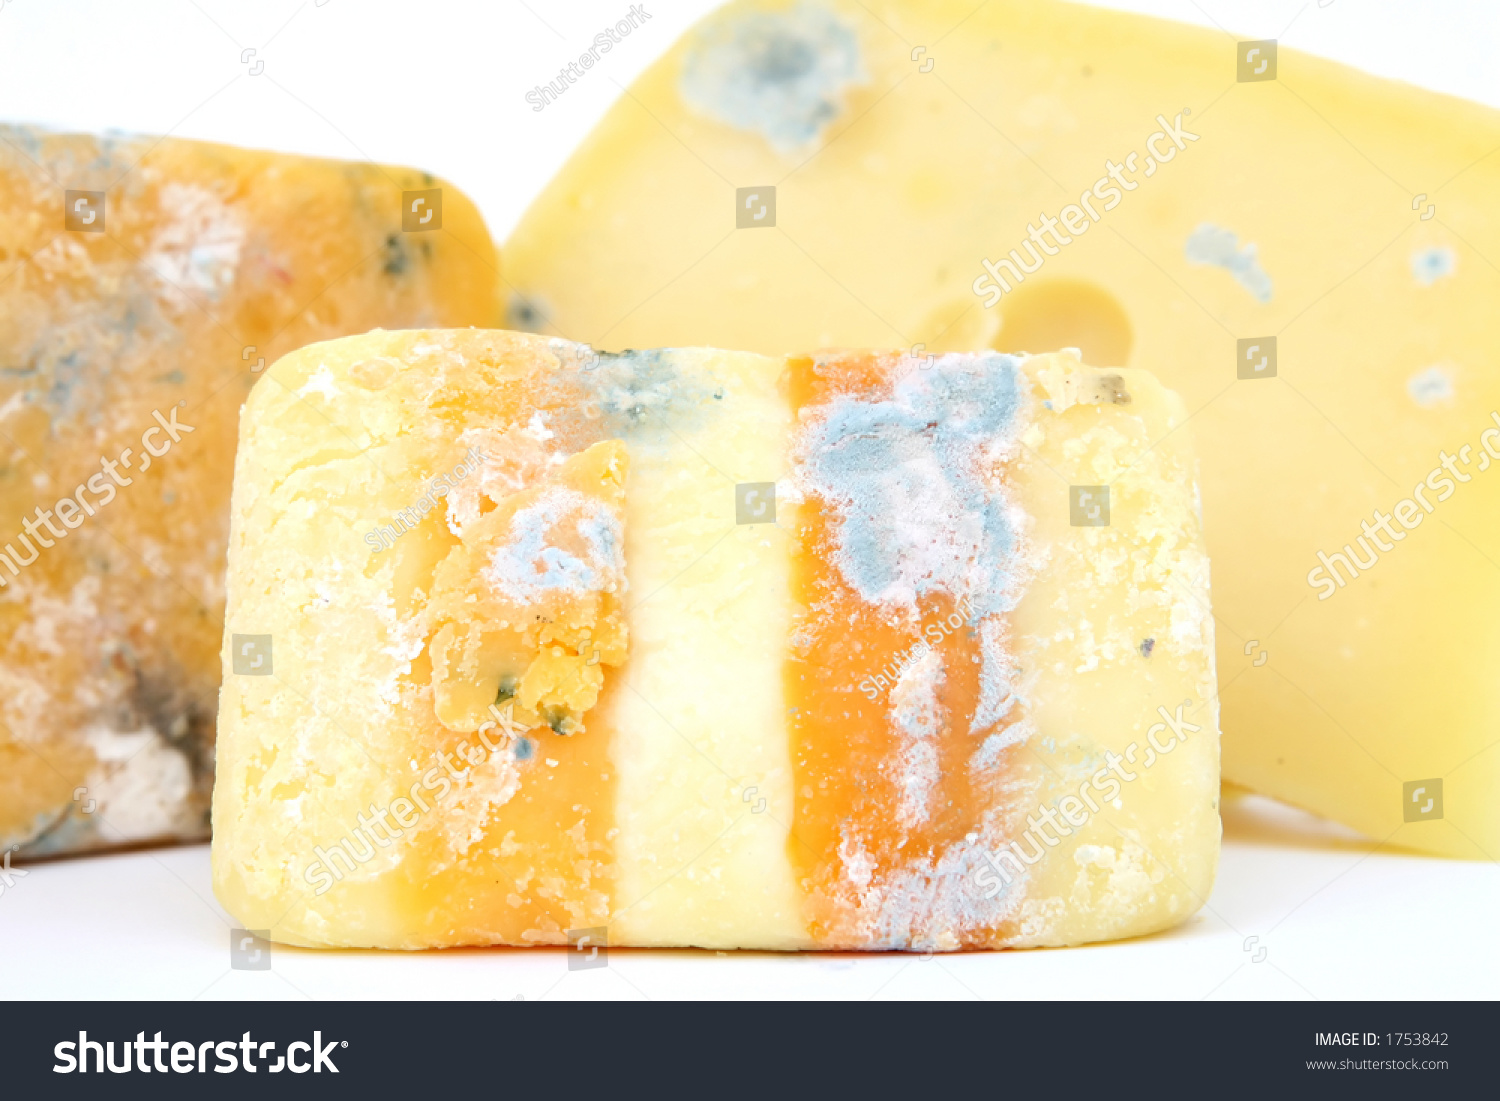 Serious Cheese: Know Your Microbes